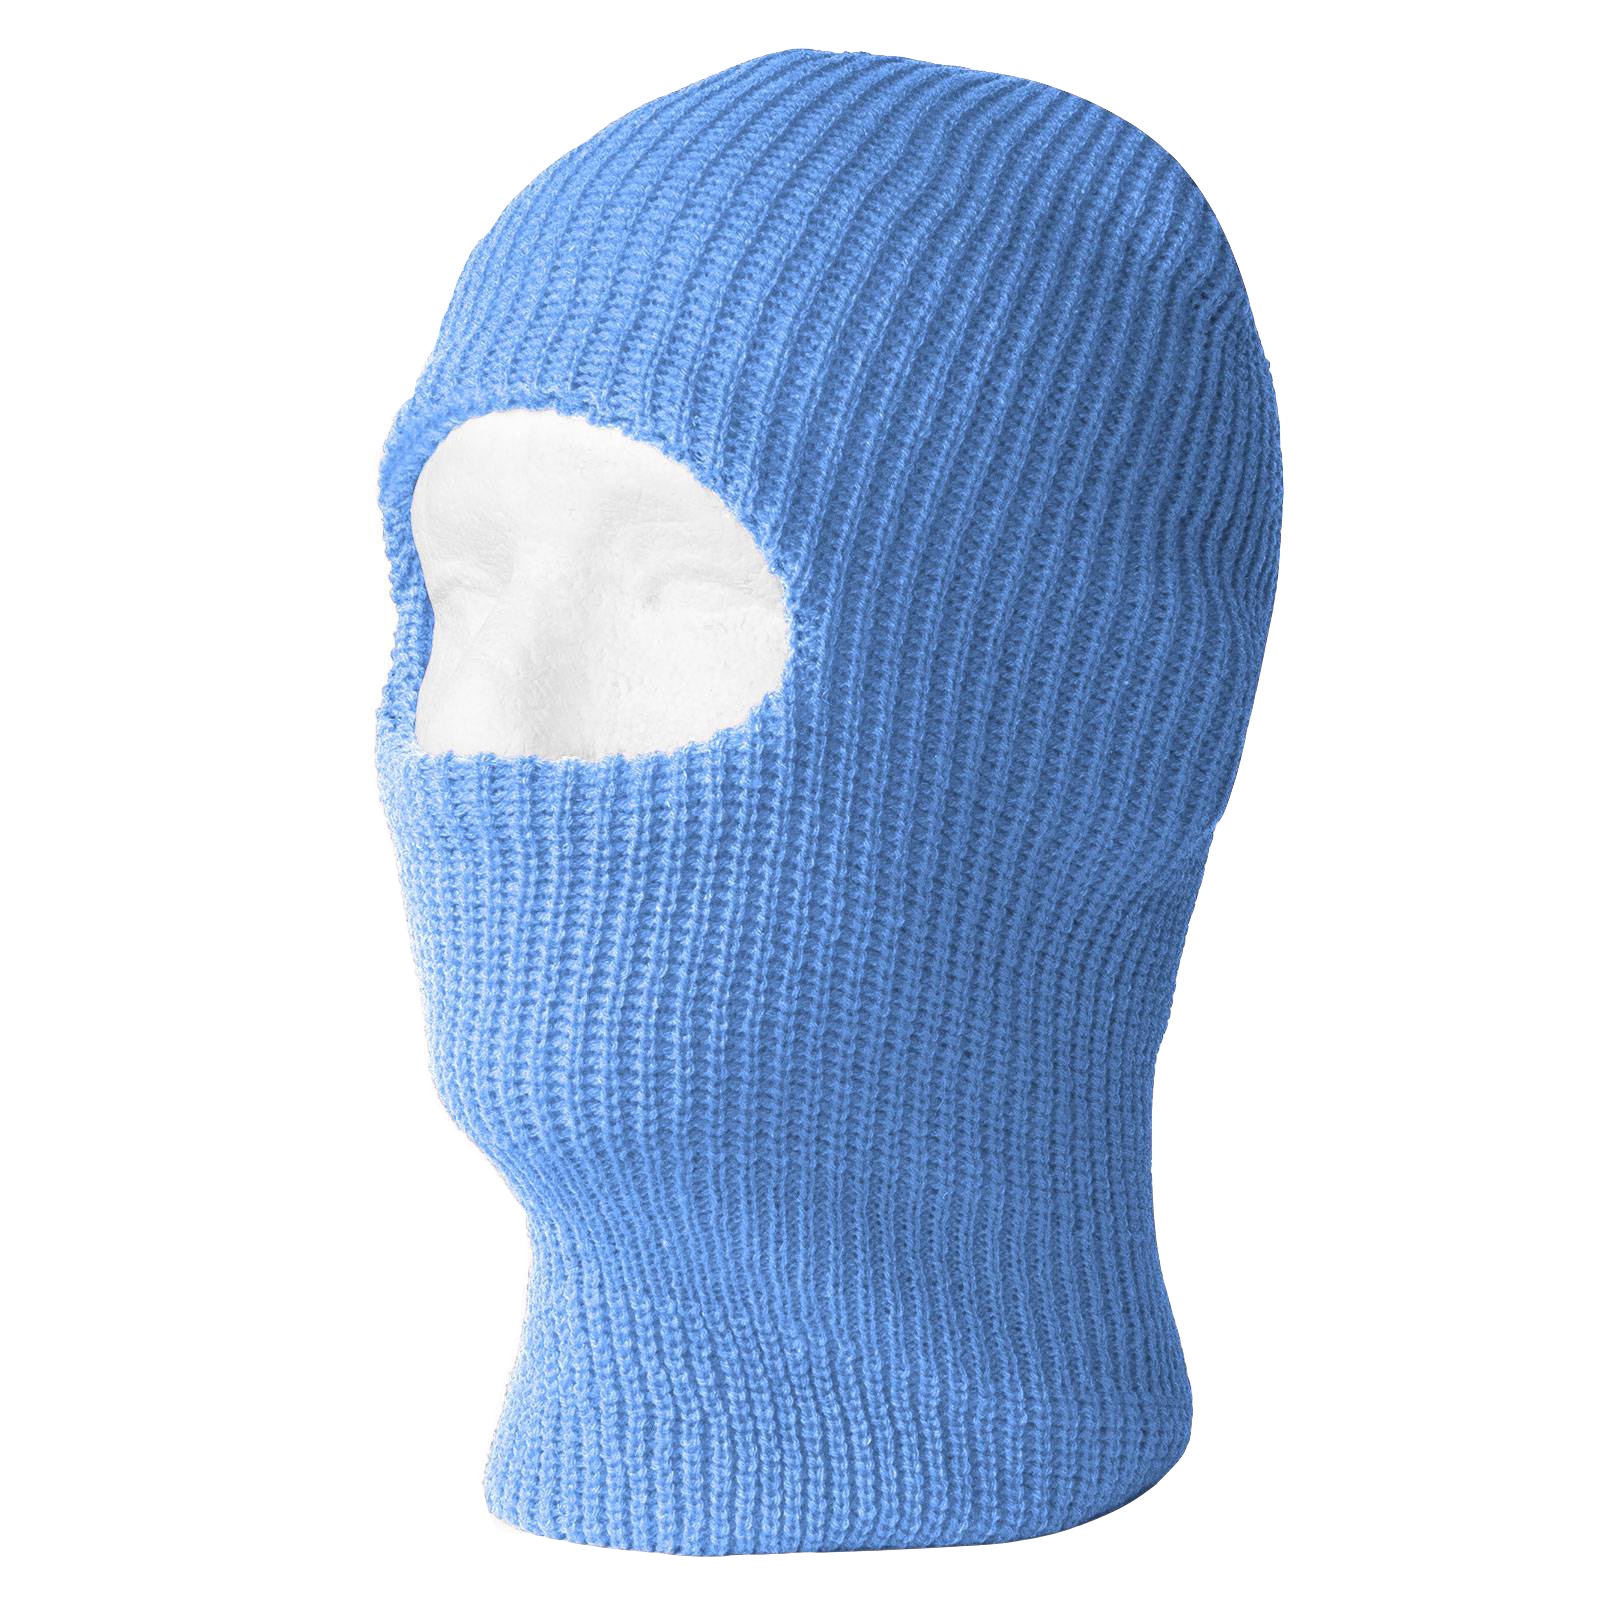 601777b2fd9 One hole ski masks - Wholesale Balaclava One-Hole Ski Masks (Full ...